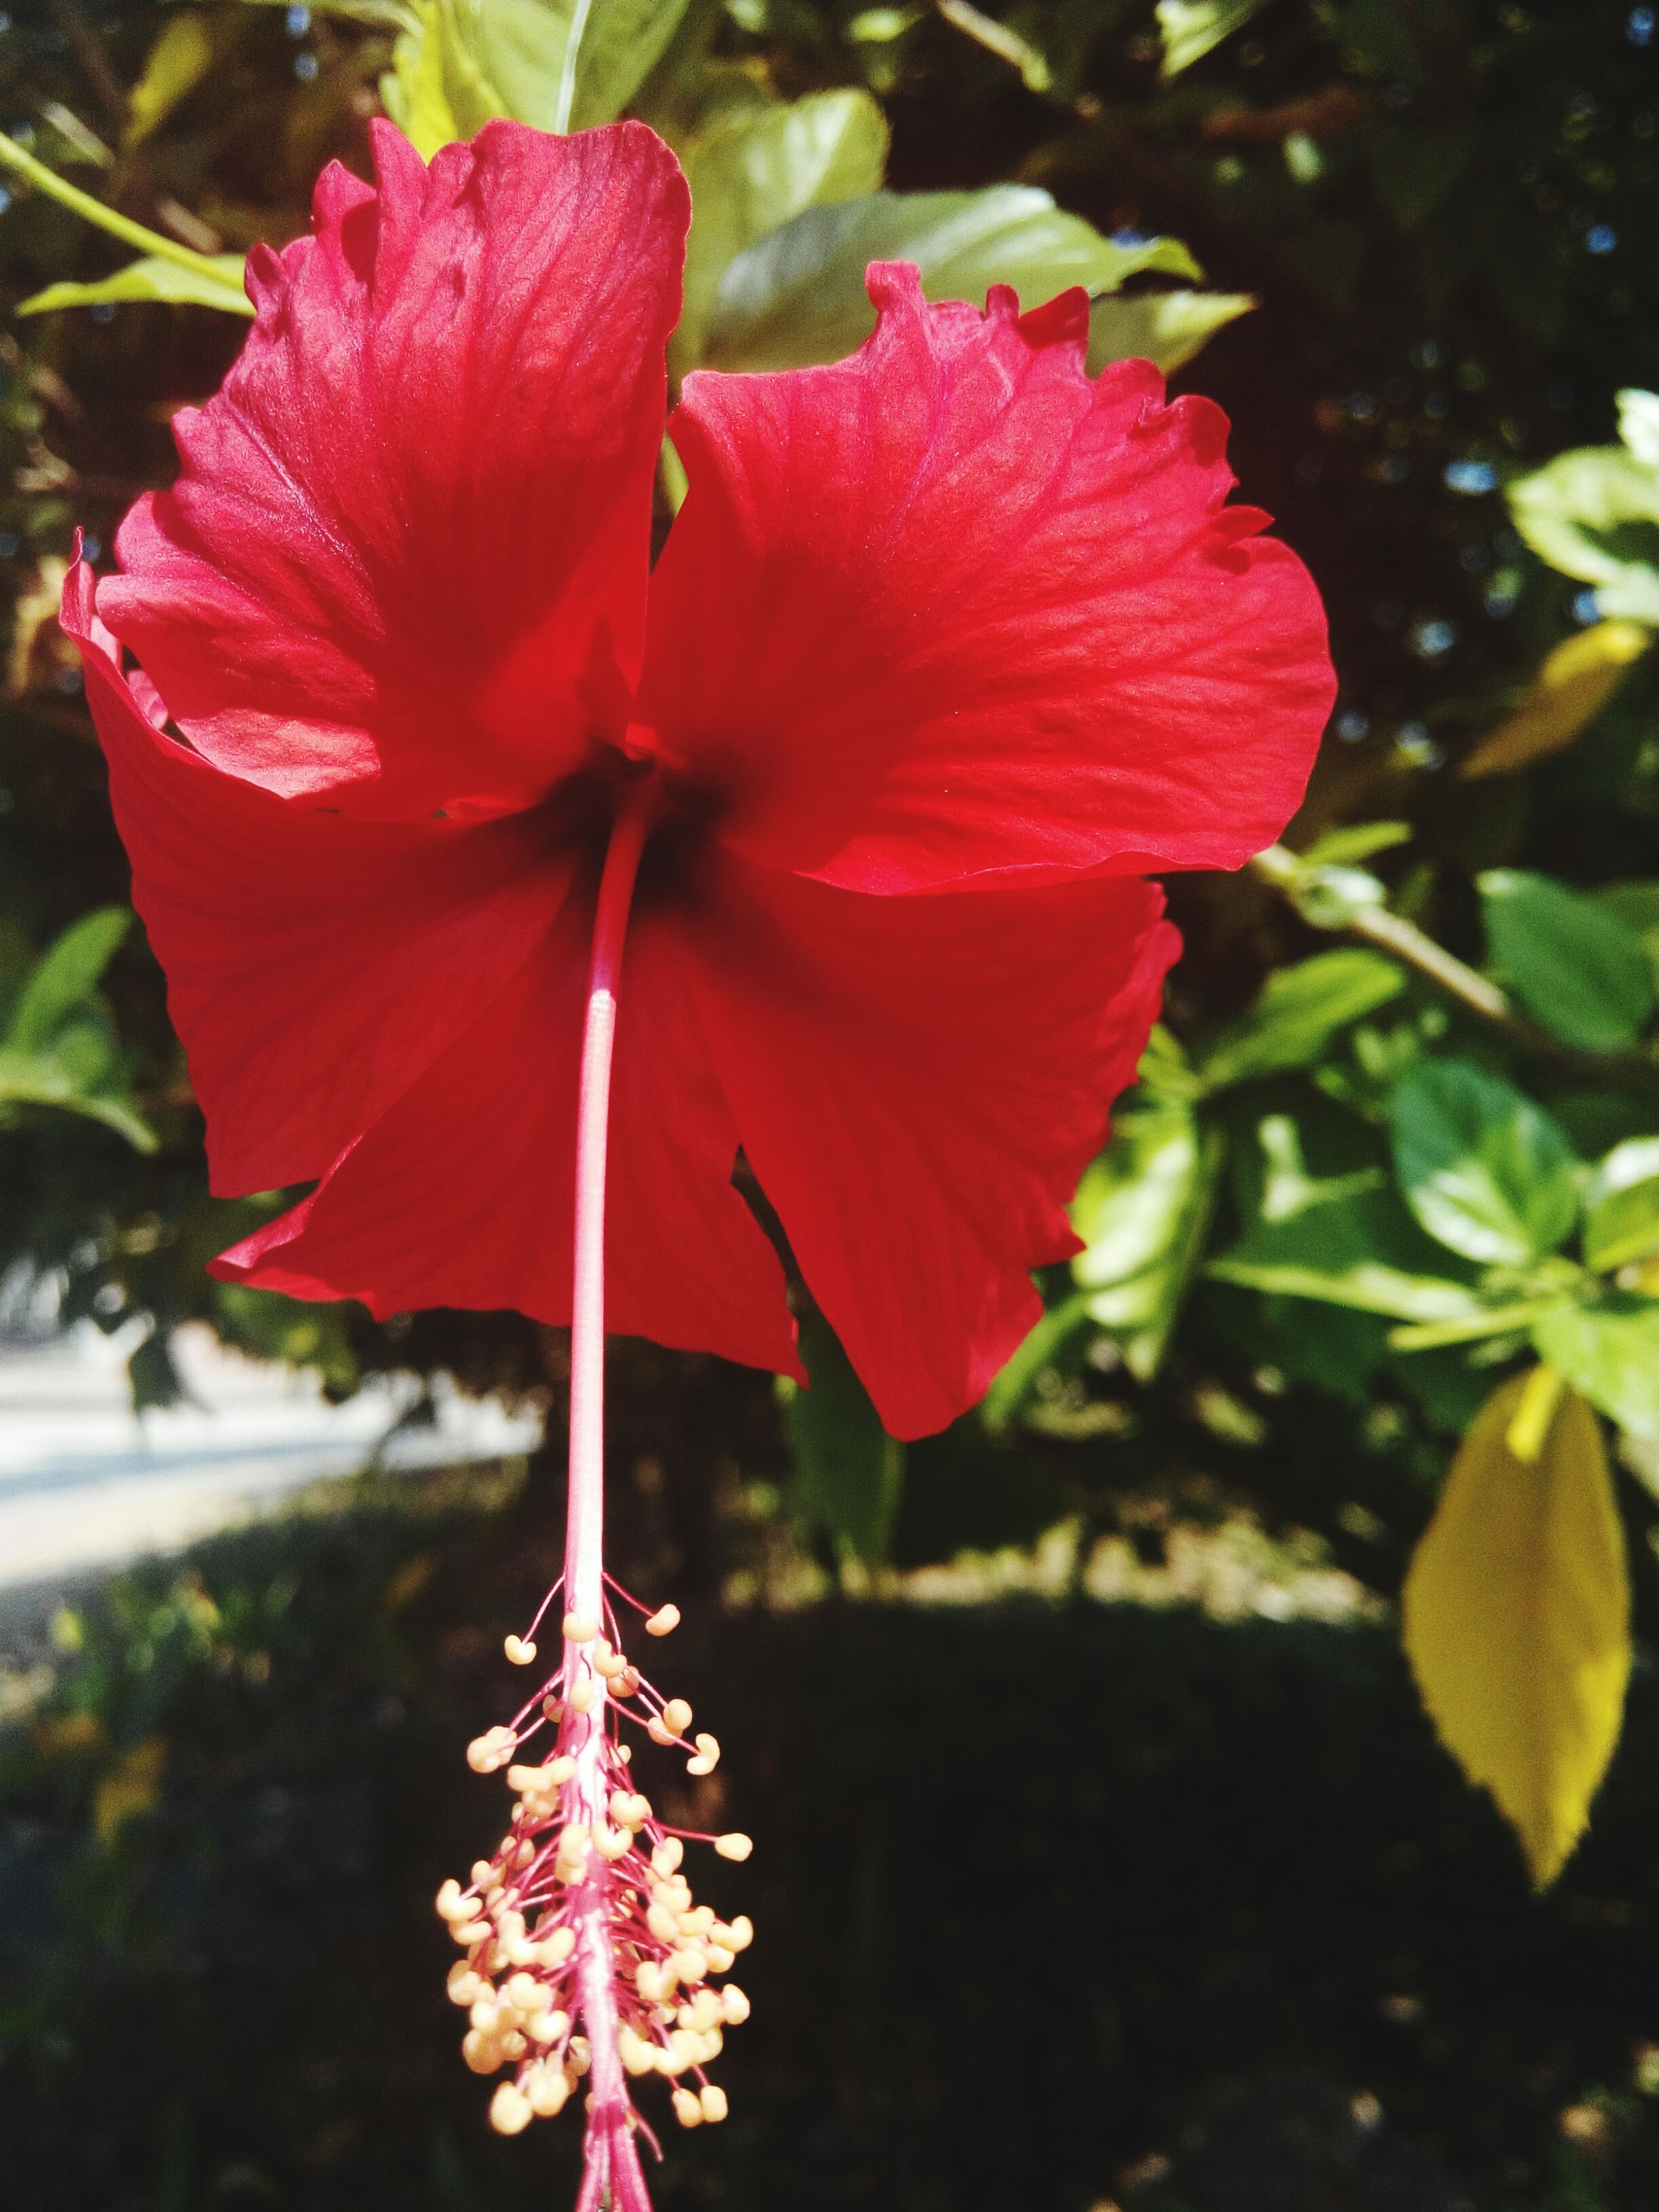 flower, petal, freshness, flower head, red, fragility, growth, beauty in nature, blooming, close-up, focus on foreground, stamen, pollen, nature, hibiscus, plant, in bloom, single flower, blossom, pink color